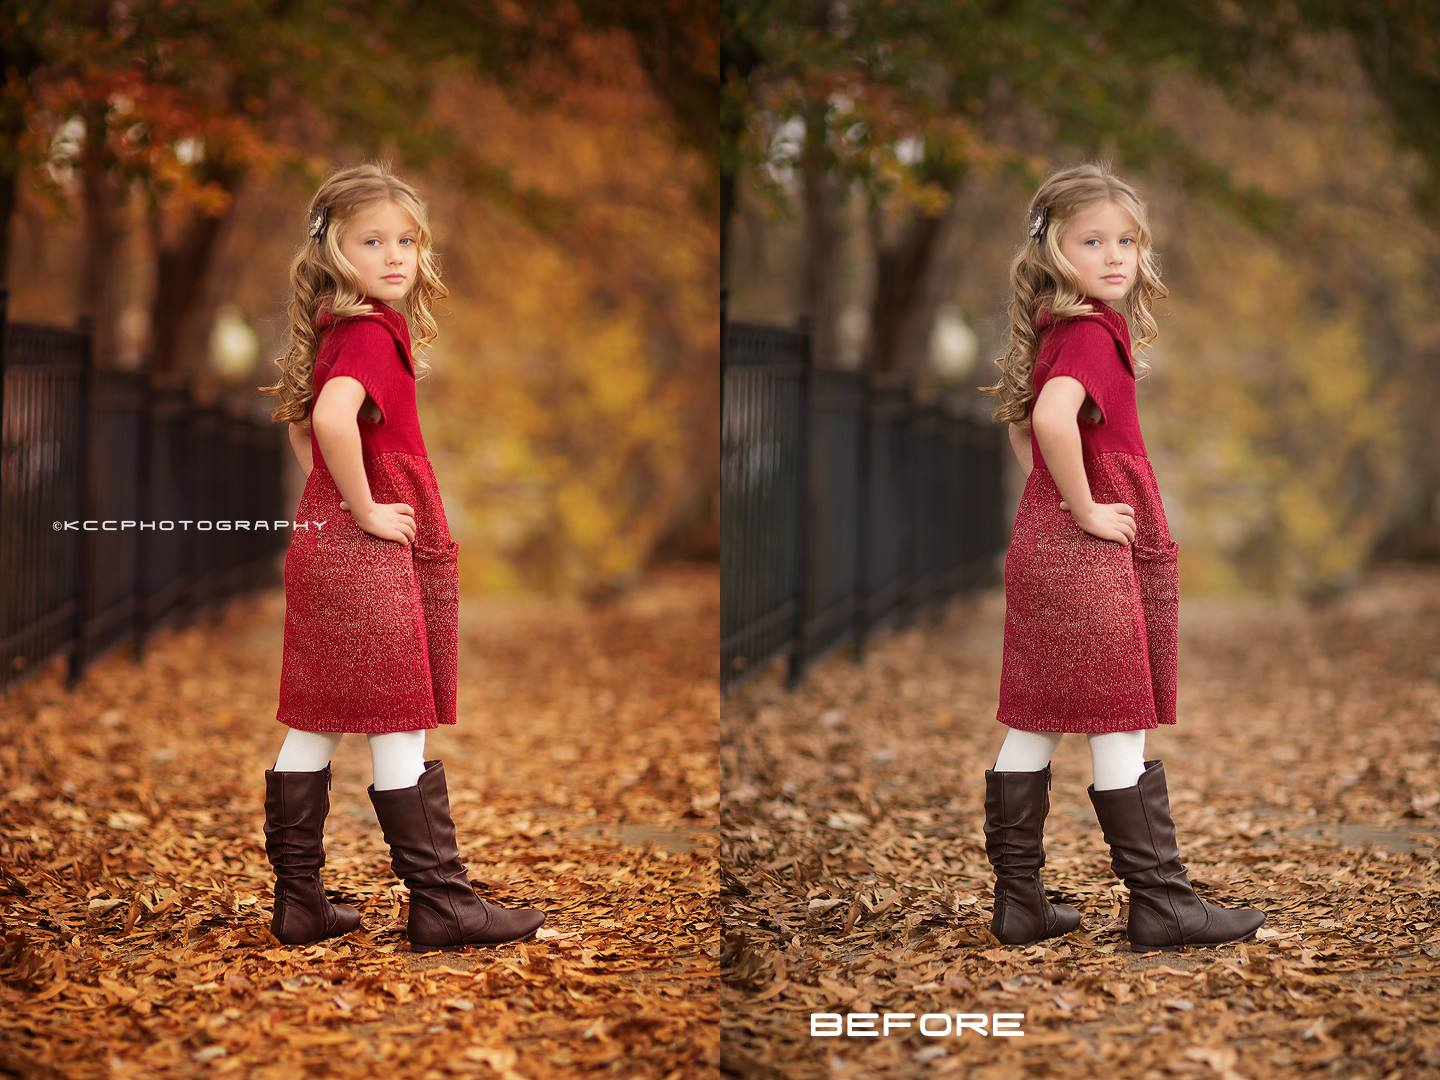 photoshop actions and overlays